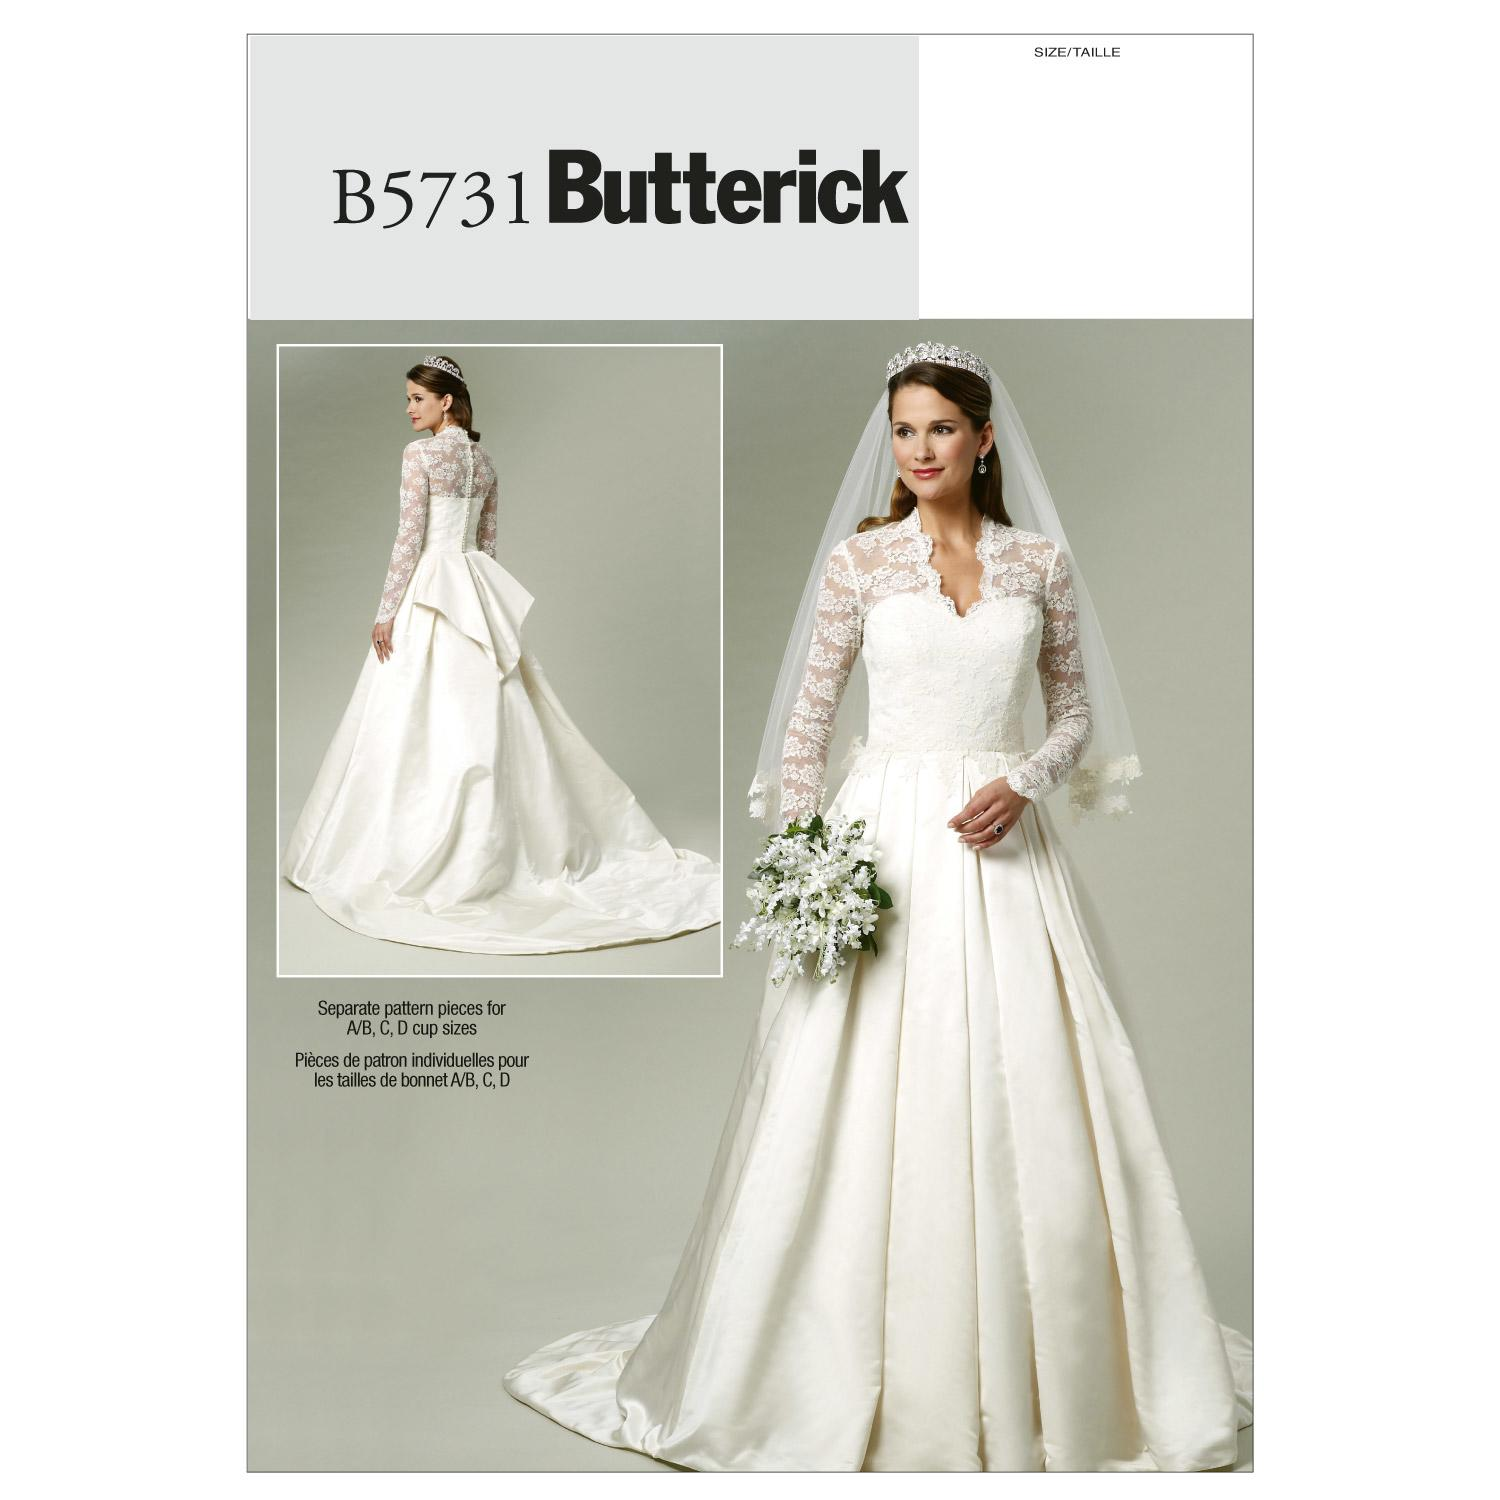 Butterick B5731 Misses' Dress